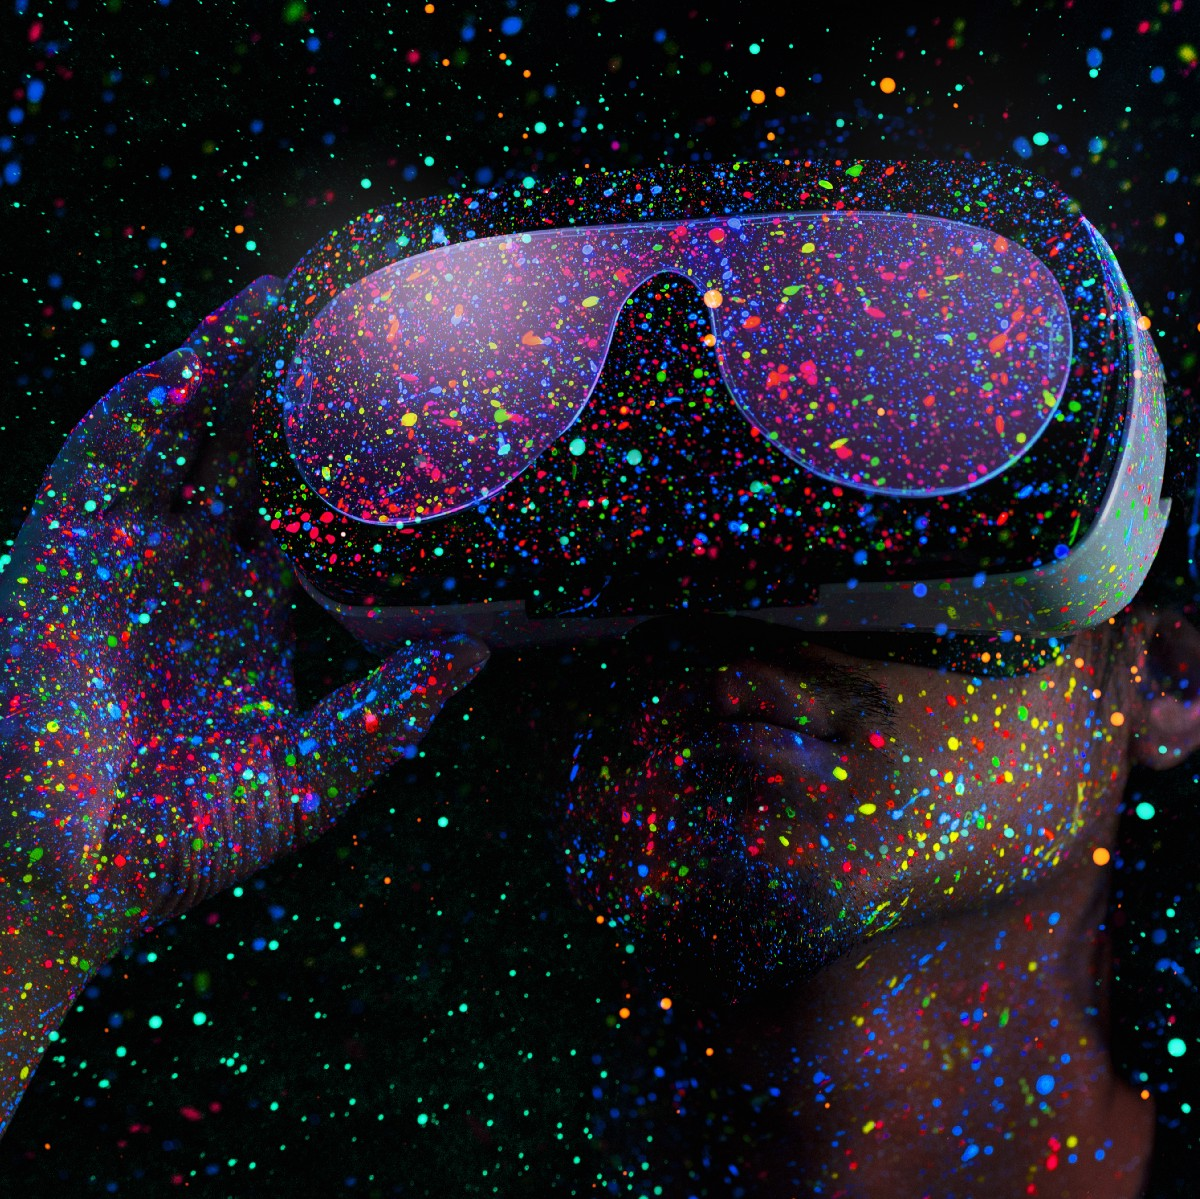 If It's OK to Fantasize About Someone You Know, Why Not in VR?